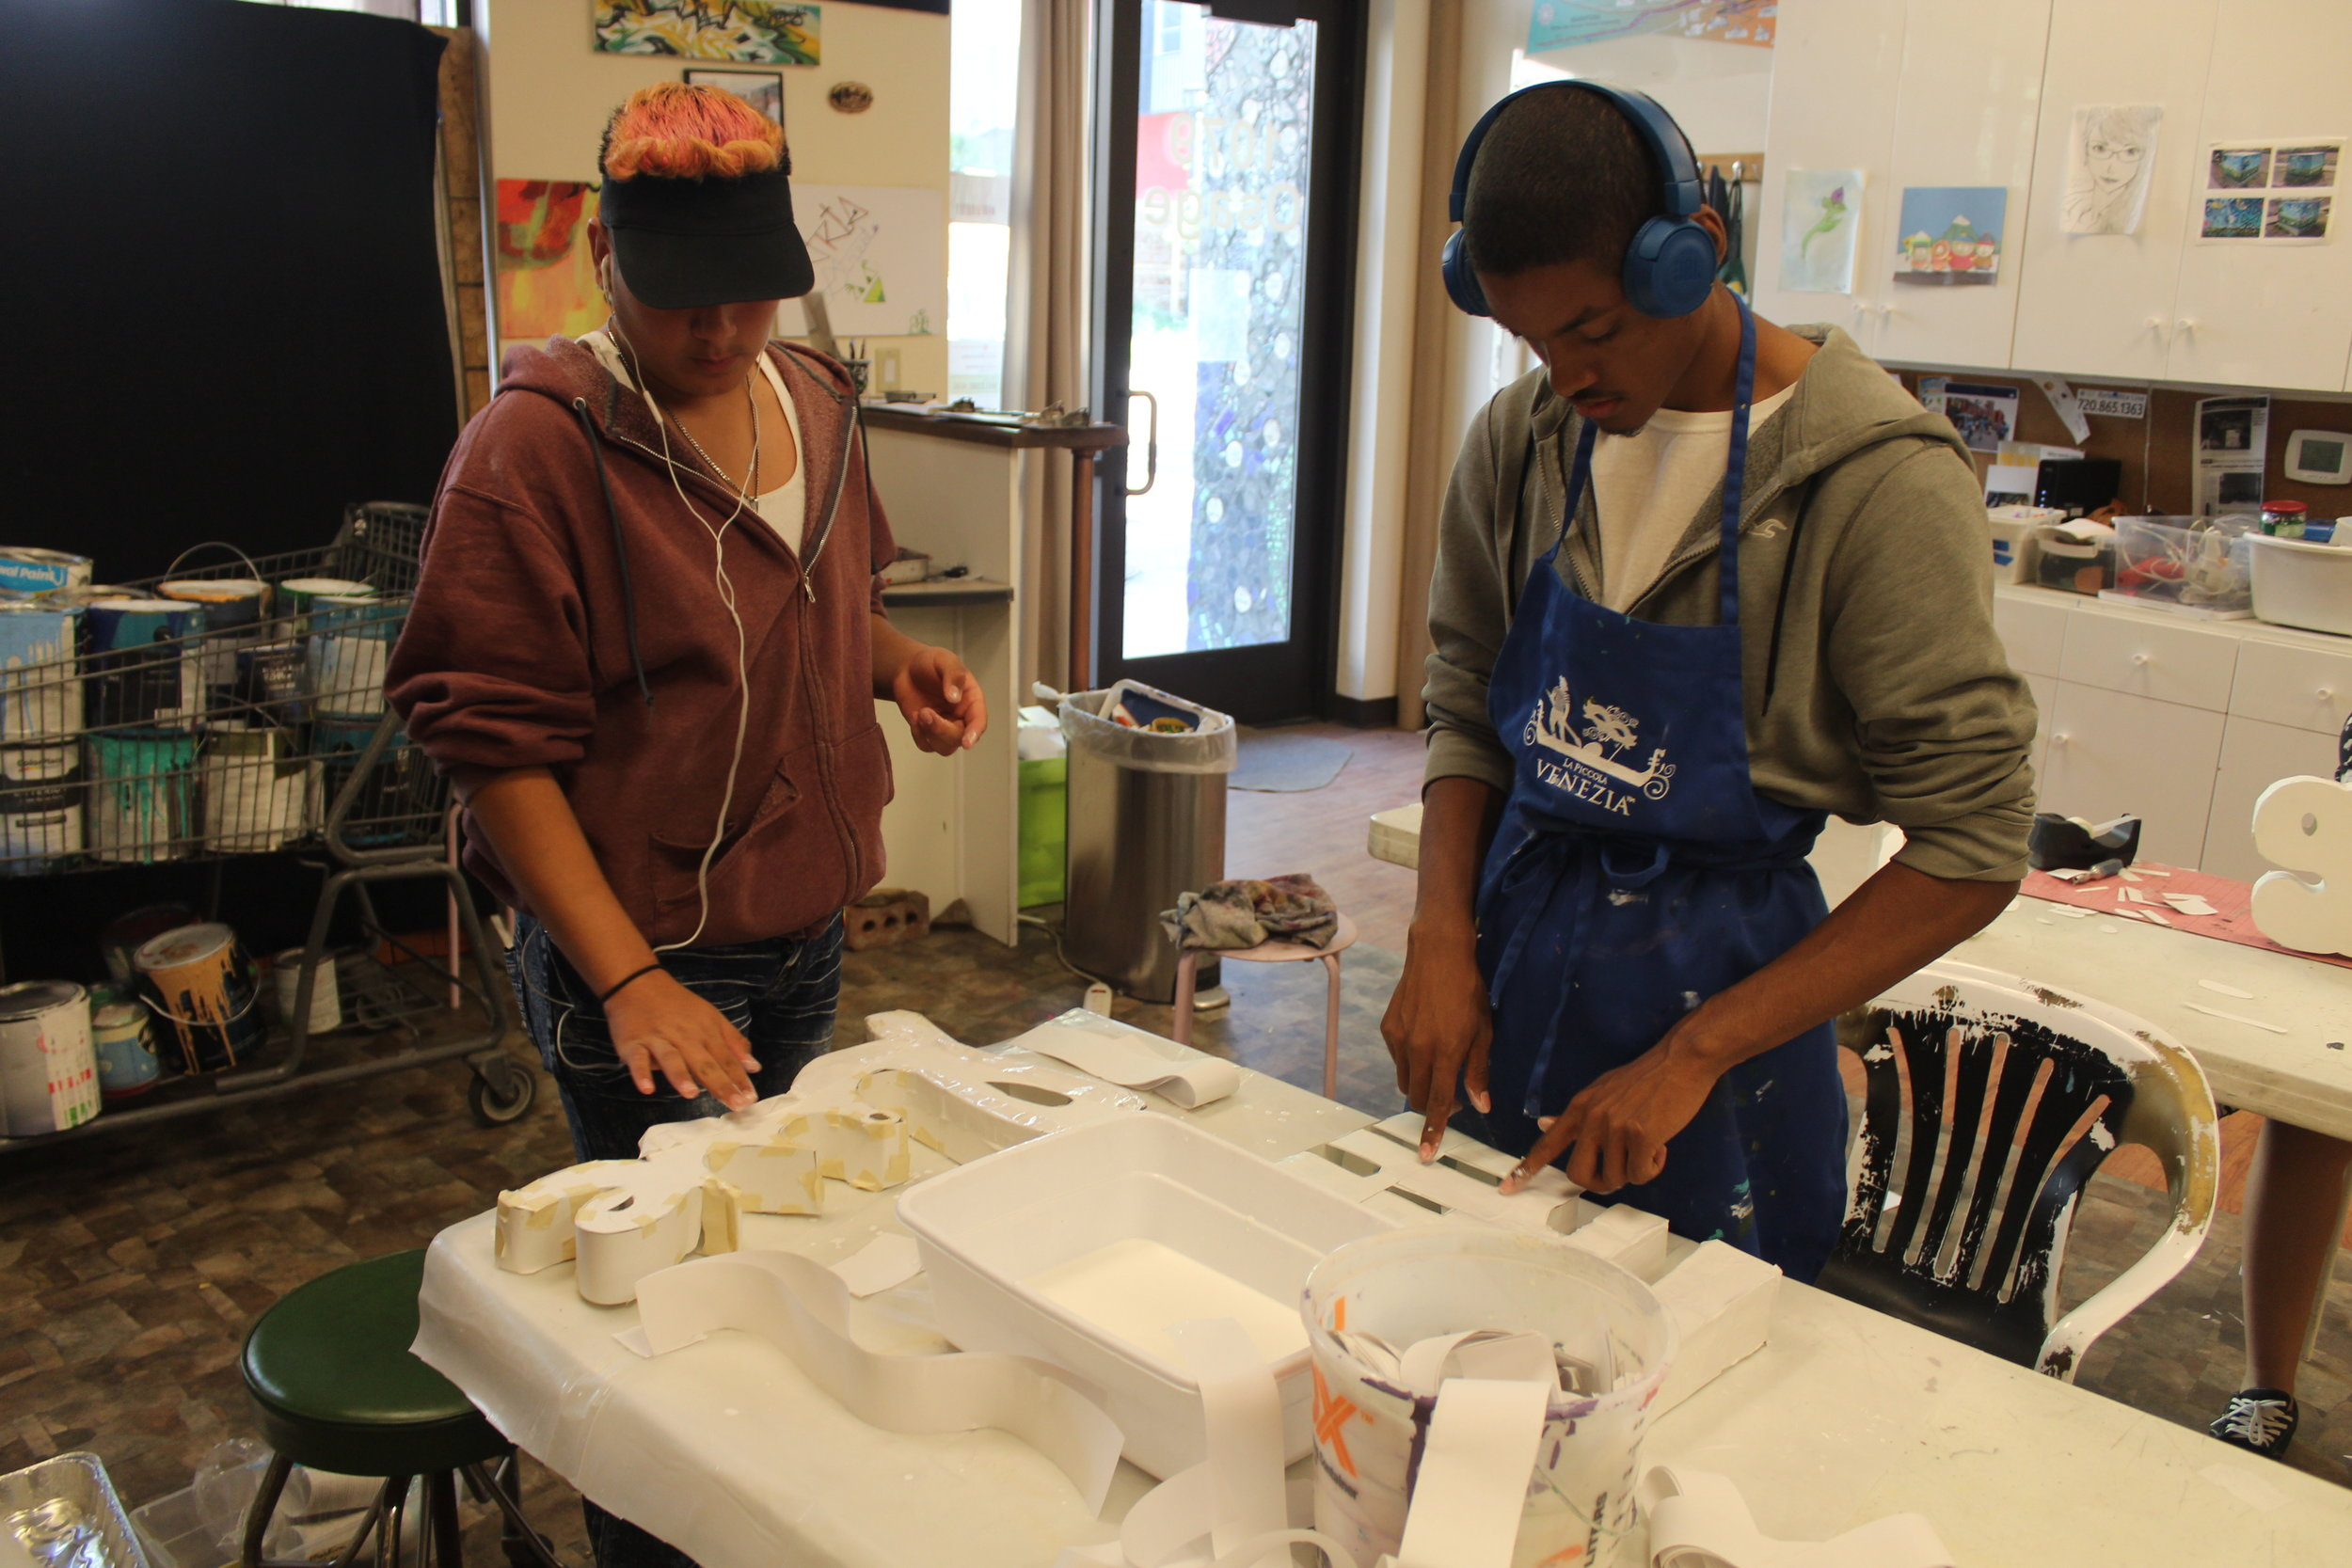 Arts Street@YEA Summer Interns worked collaboratively to complete their community projects.